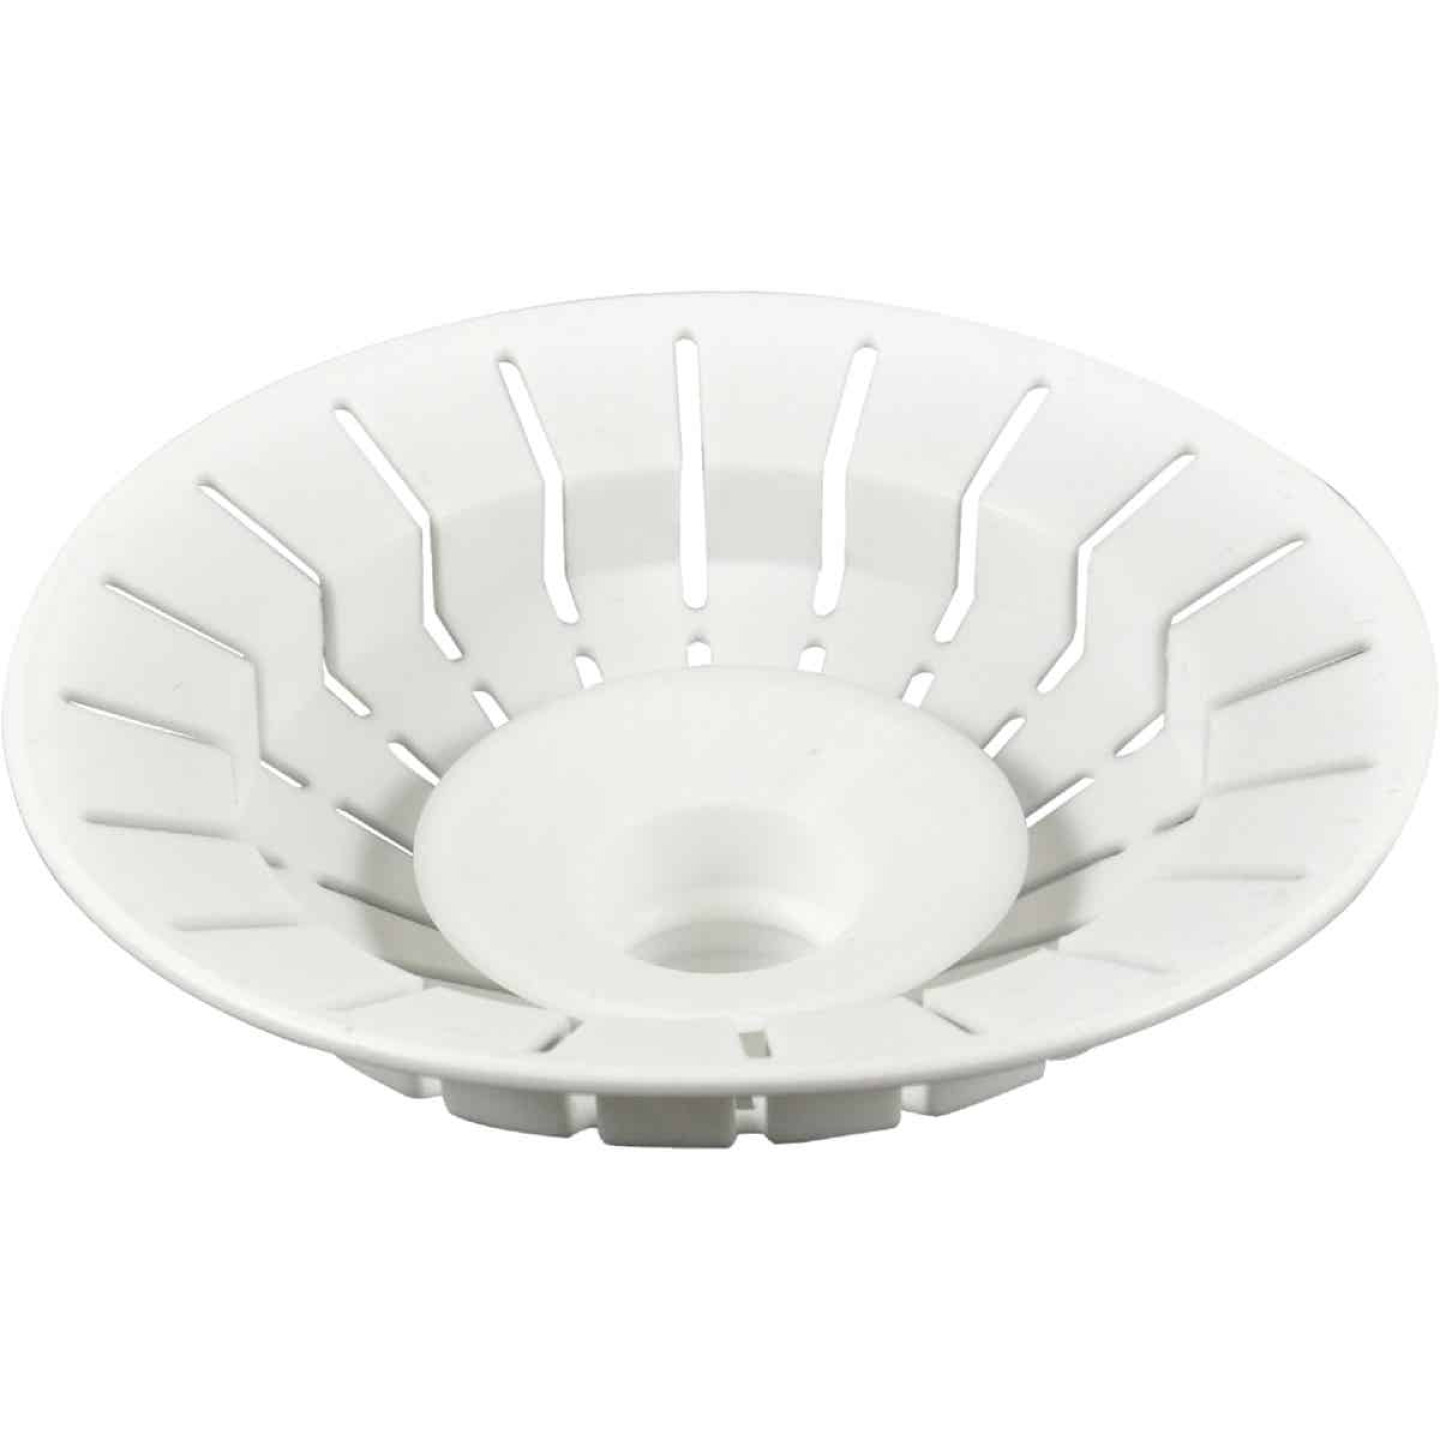 Danco Standard Size Suction Cup Silicone Tub Drain Strainer Image 2